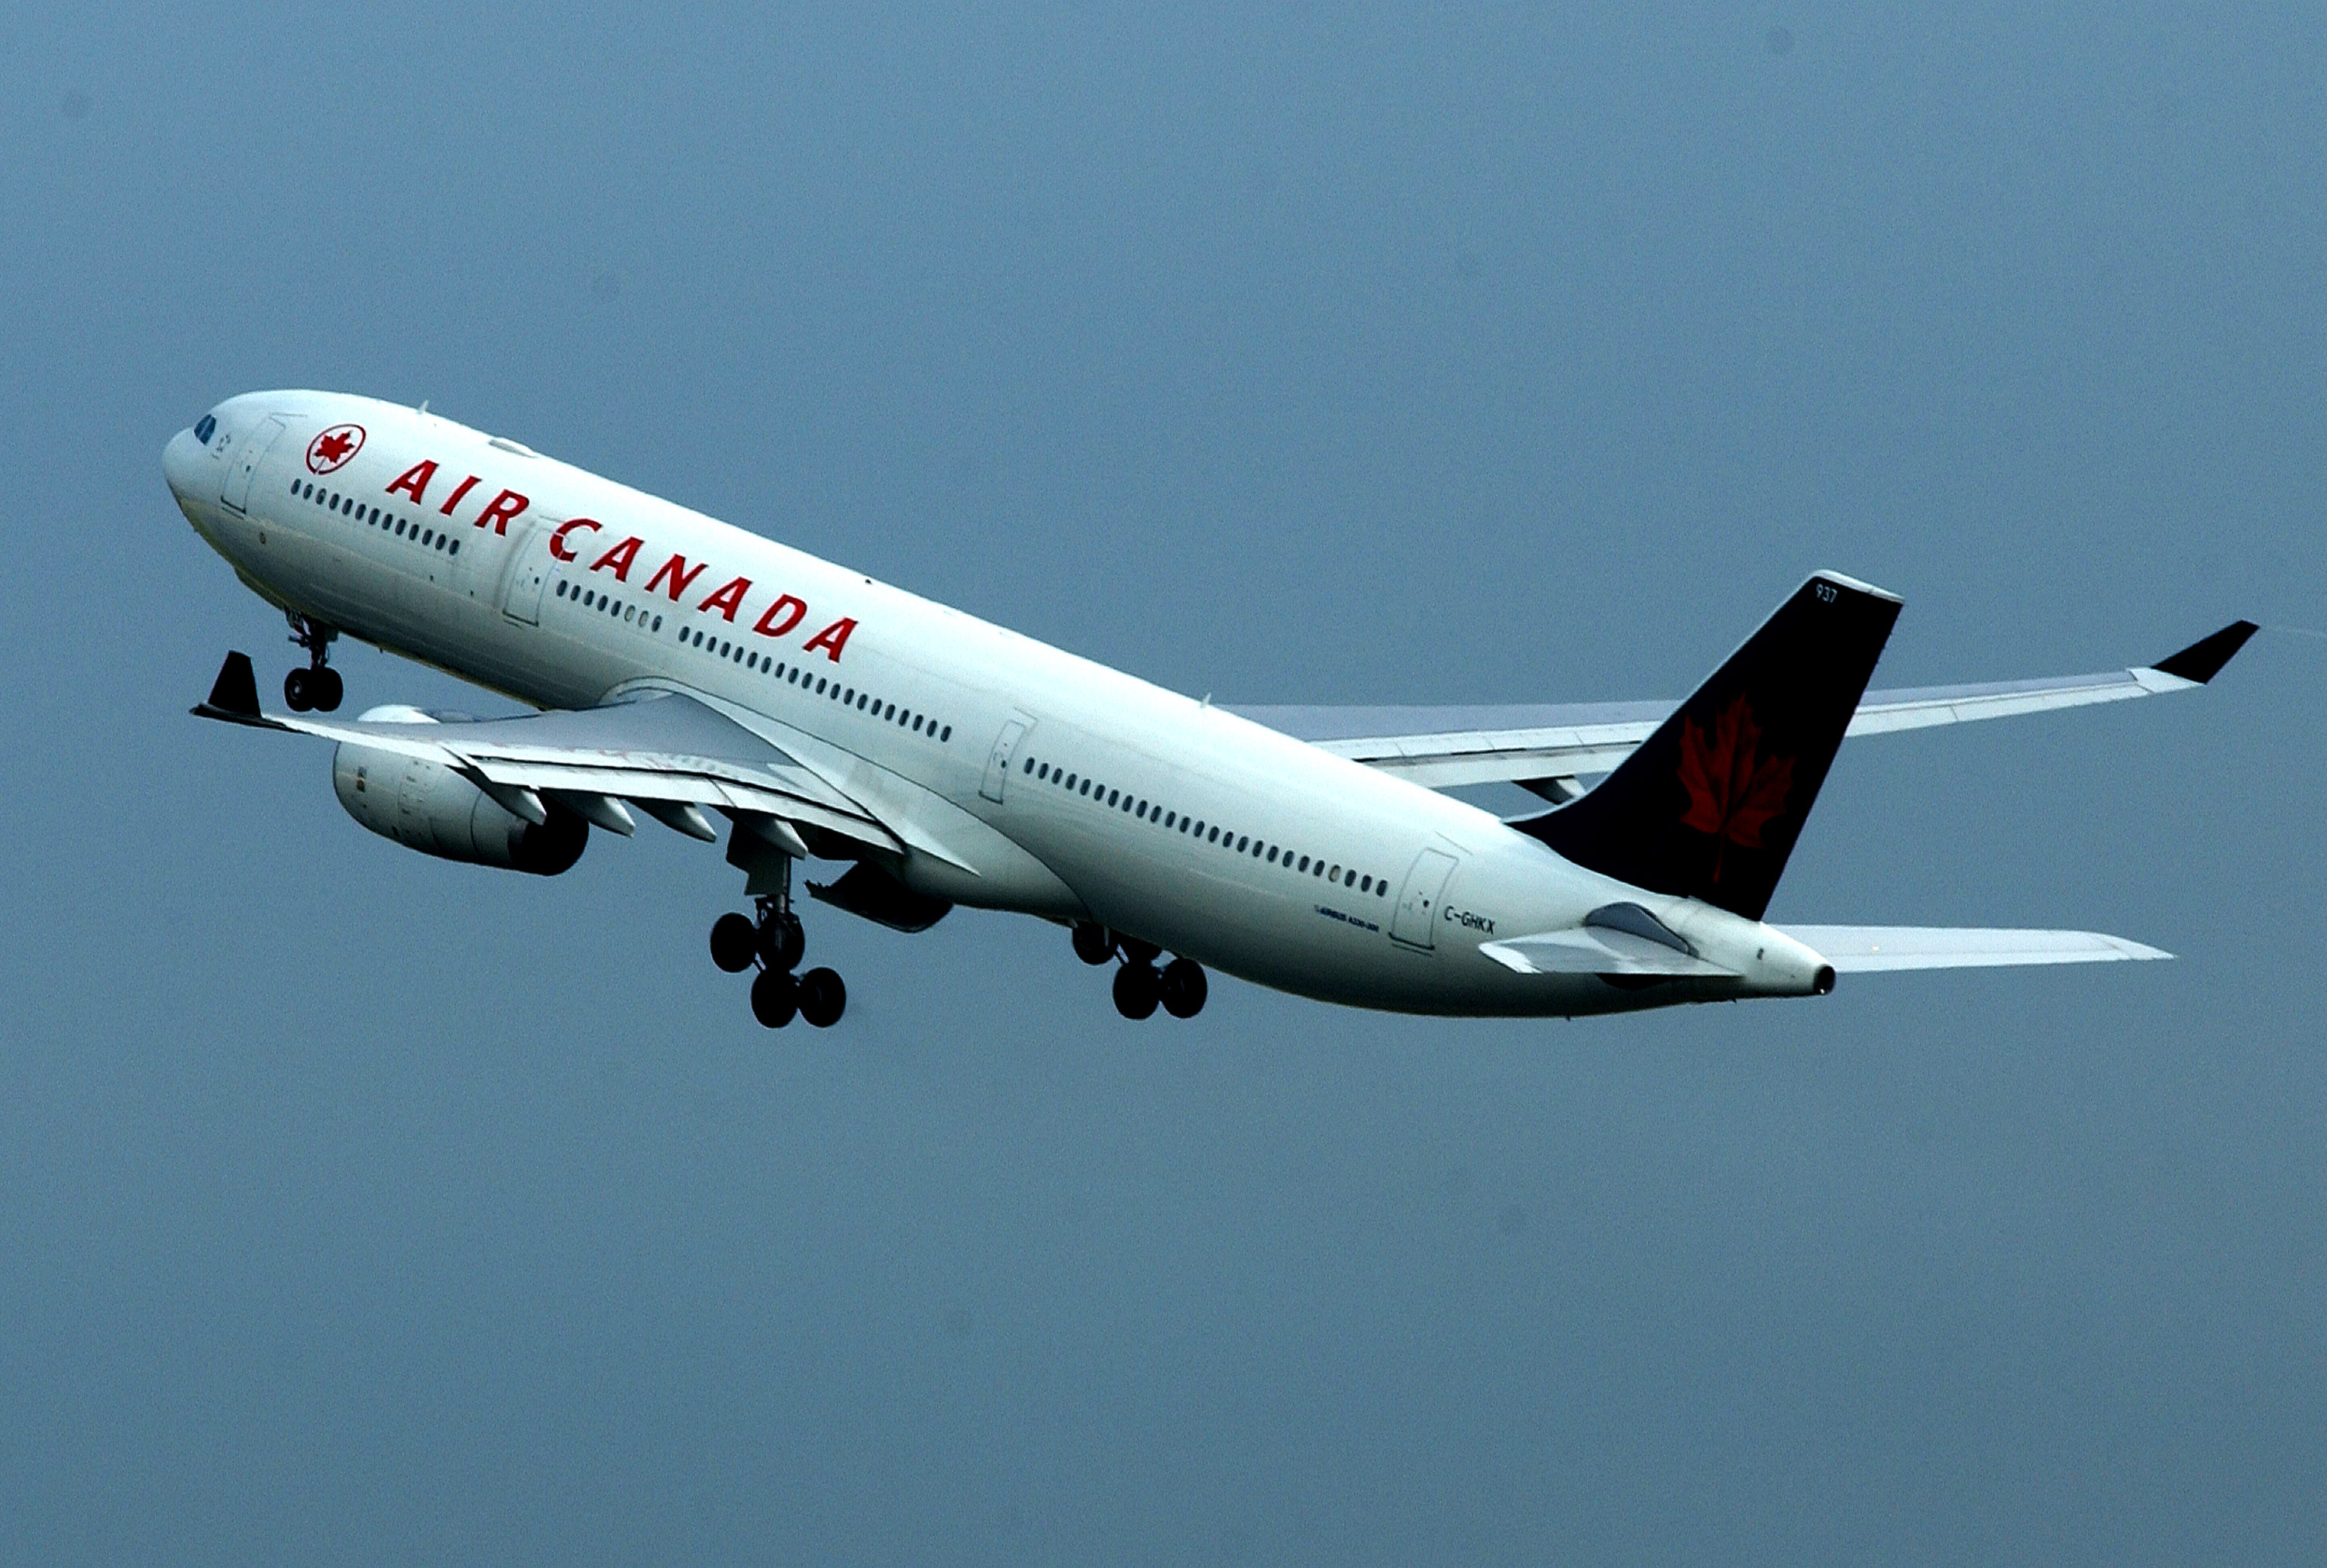 LONDON - JULY 31: An Air Canada passenger plane is shown in flight at Heathrow Airport July 31, 2002 in London, England. Passenger numbers have fallen since the September 11, 2001 terrorist attacks in the United States. Airline companies have all suffered a difficult trading period. (Photo by John Li/Getty Images)